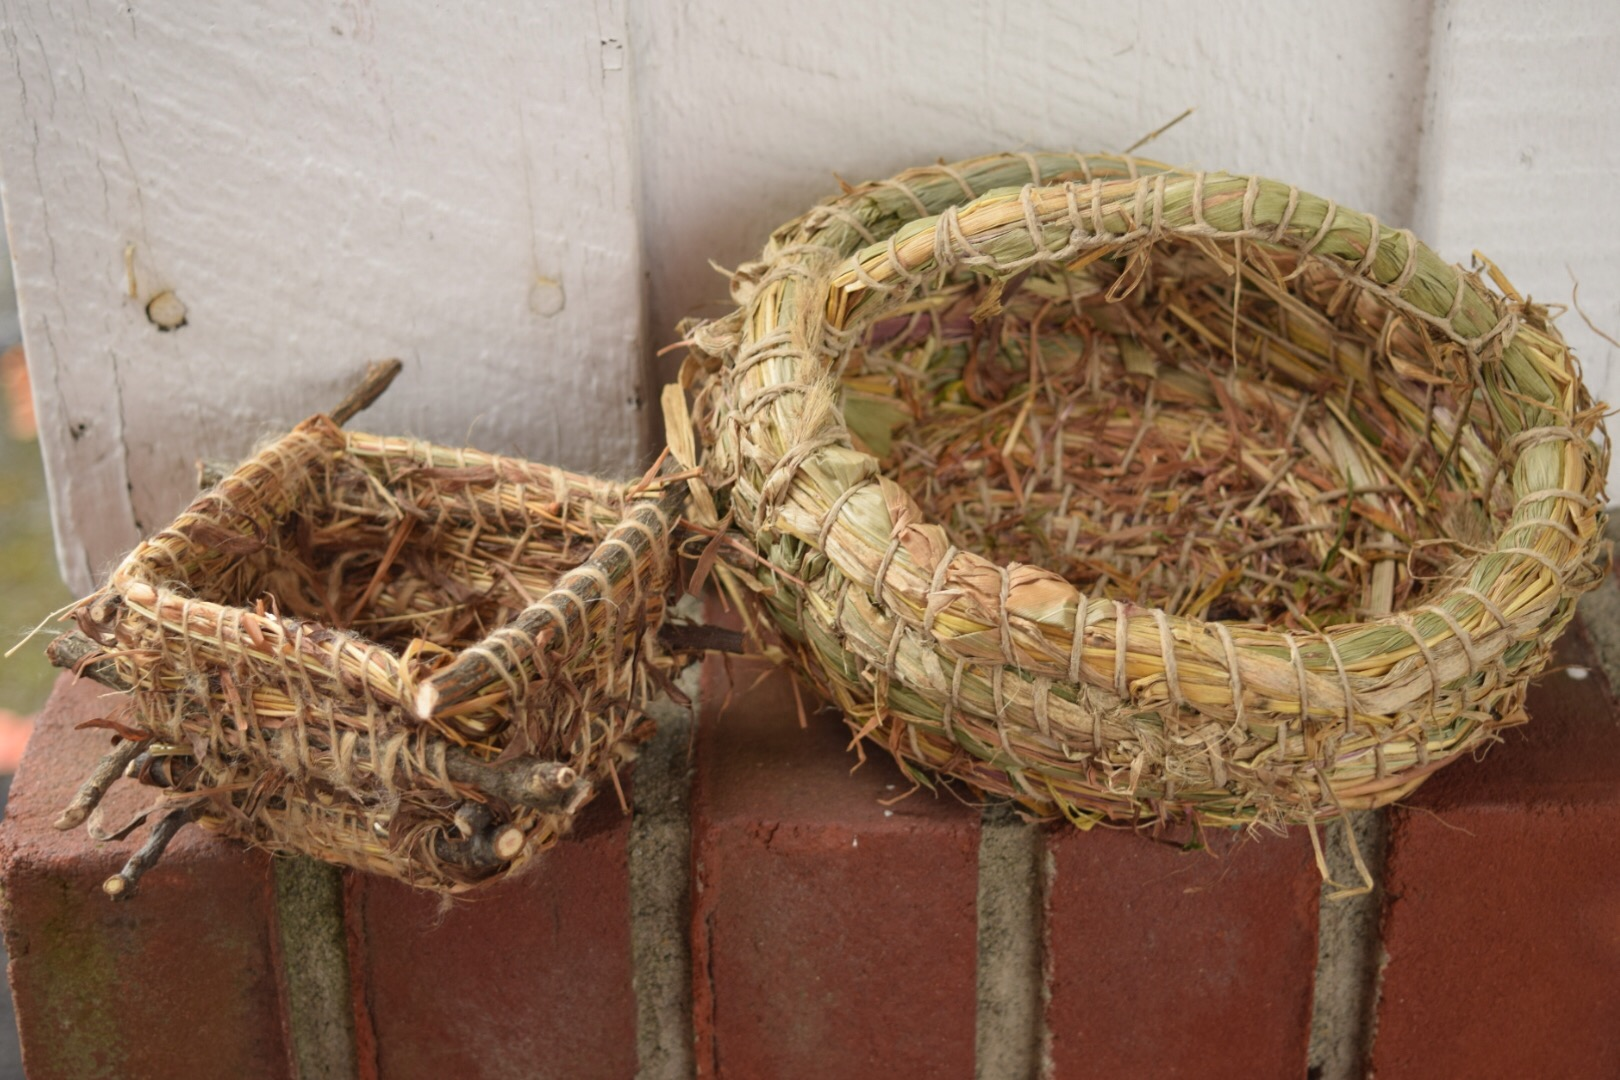 Teaching Basketry At The 2016 NYS Sheep And Wool Festival